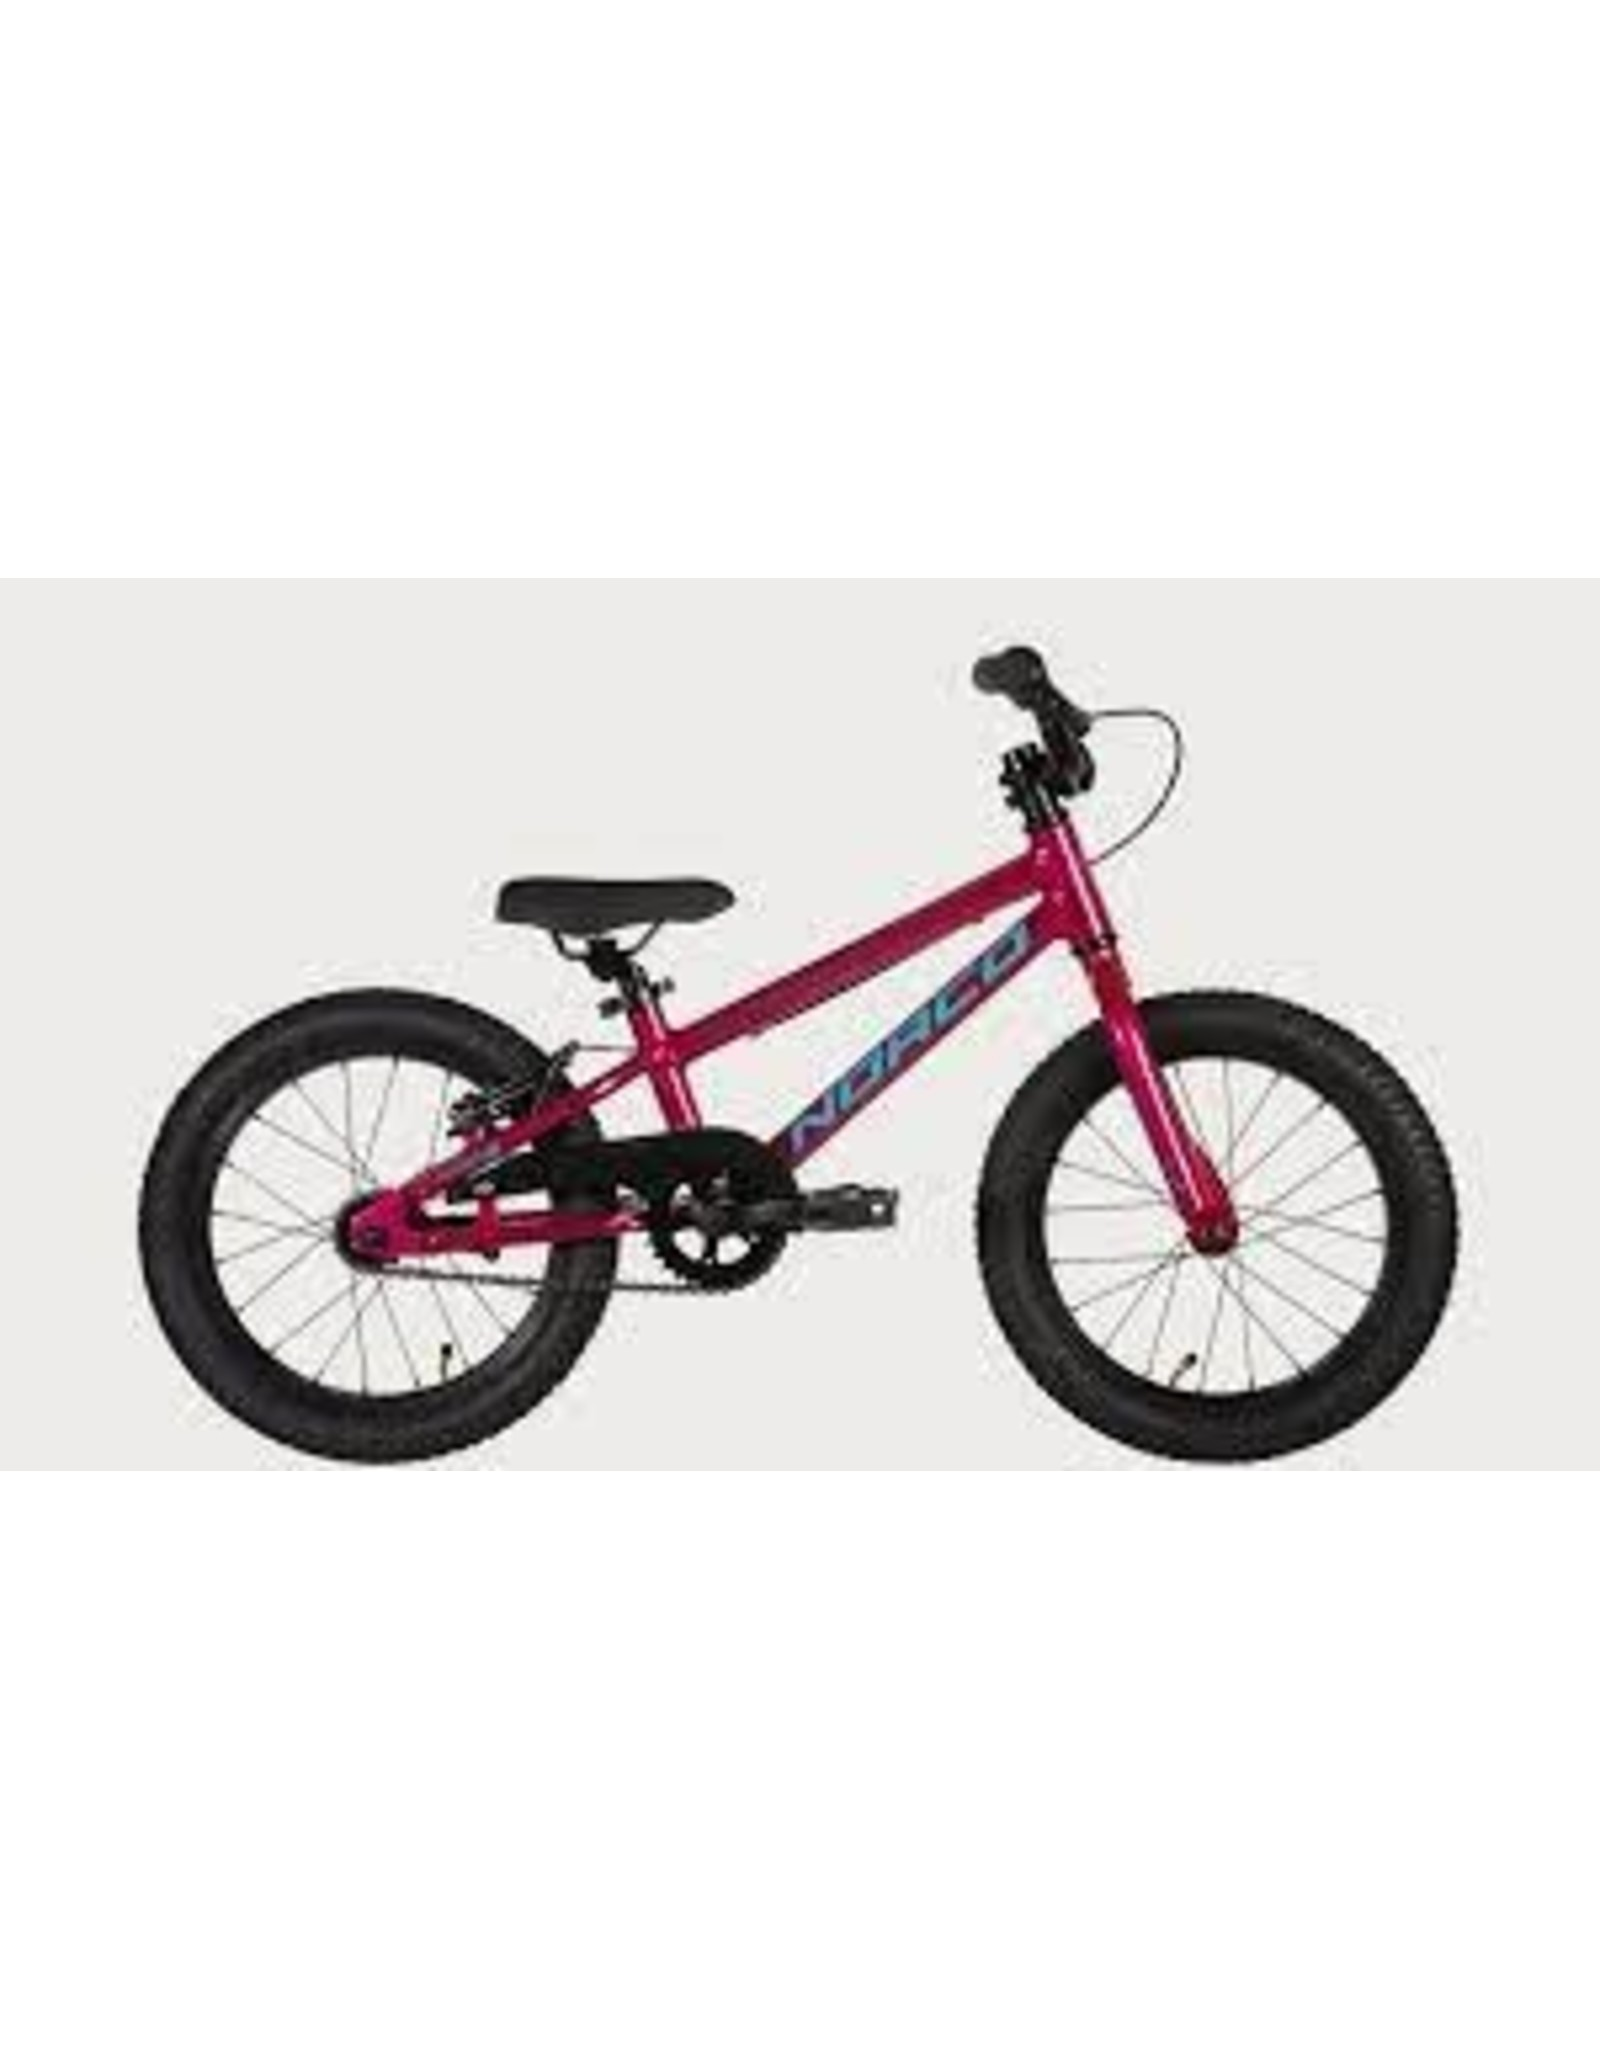 NORCO BIKE NORCO ROLLER 20 PINK